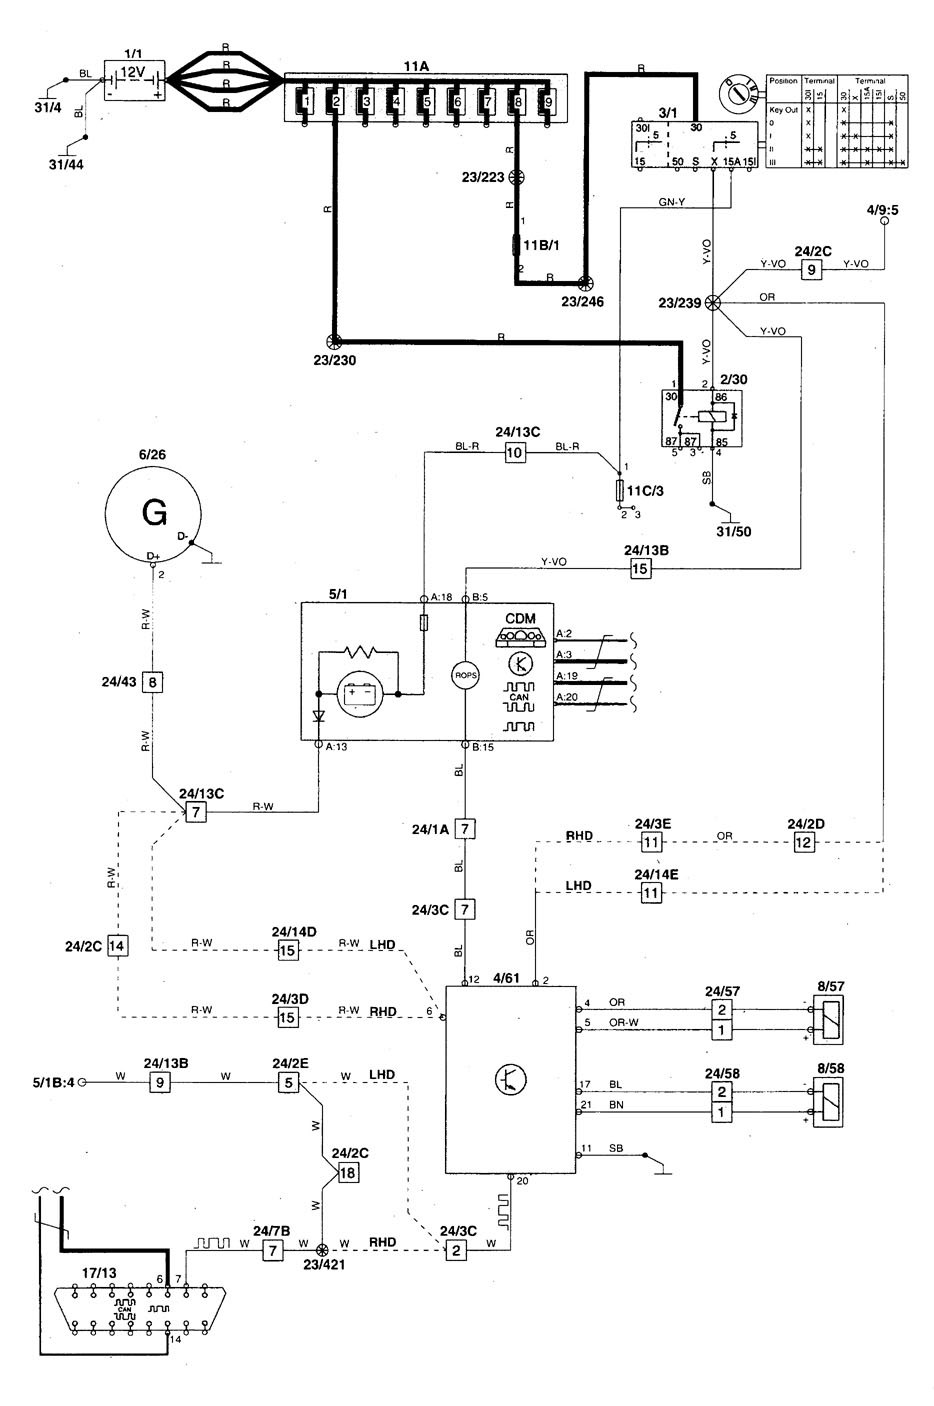 Volvo V70 Wiring Diagram 1998 Archive Of Automotive Ignition Switch 1999 Diagrams Roll Bar Carknowledge Rh Info